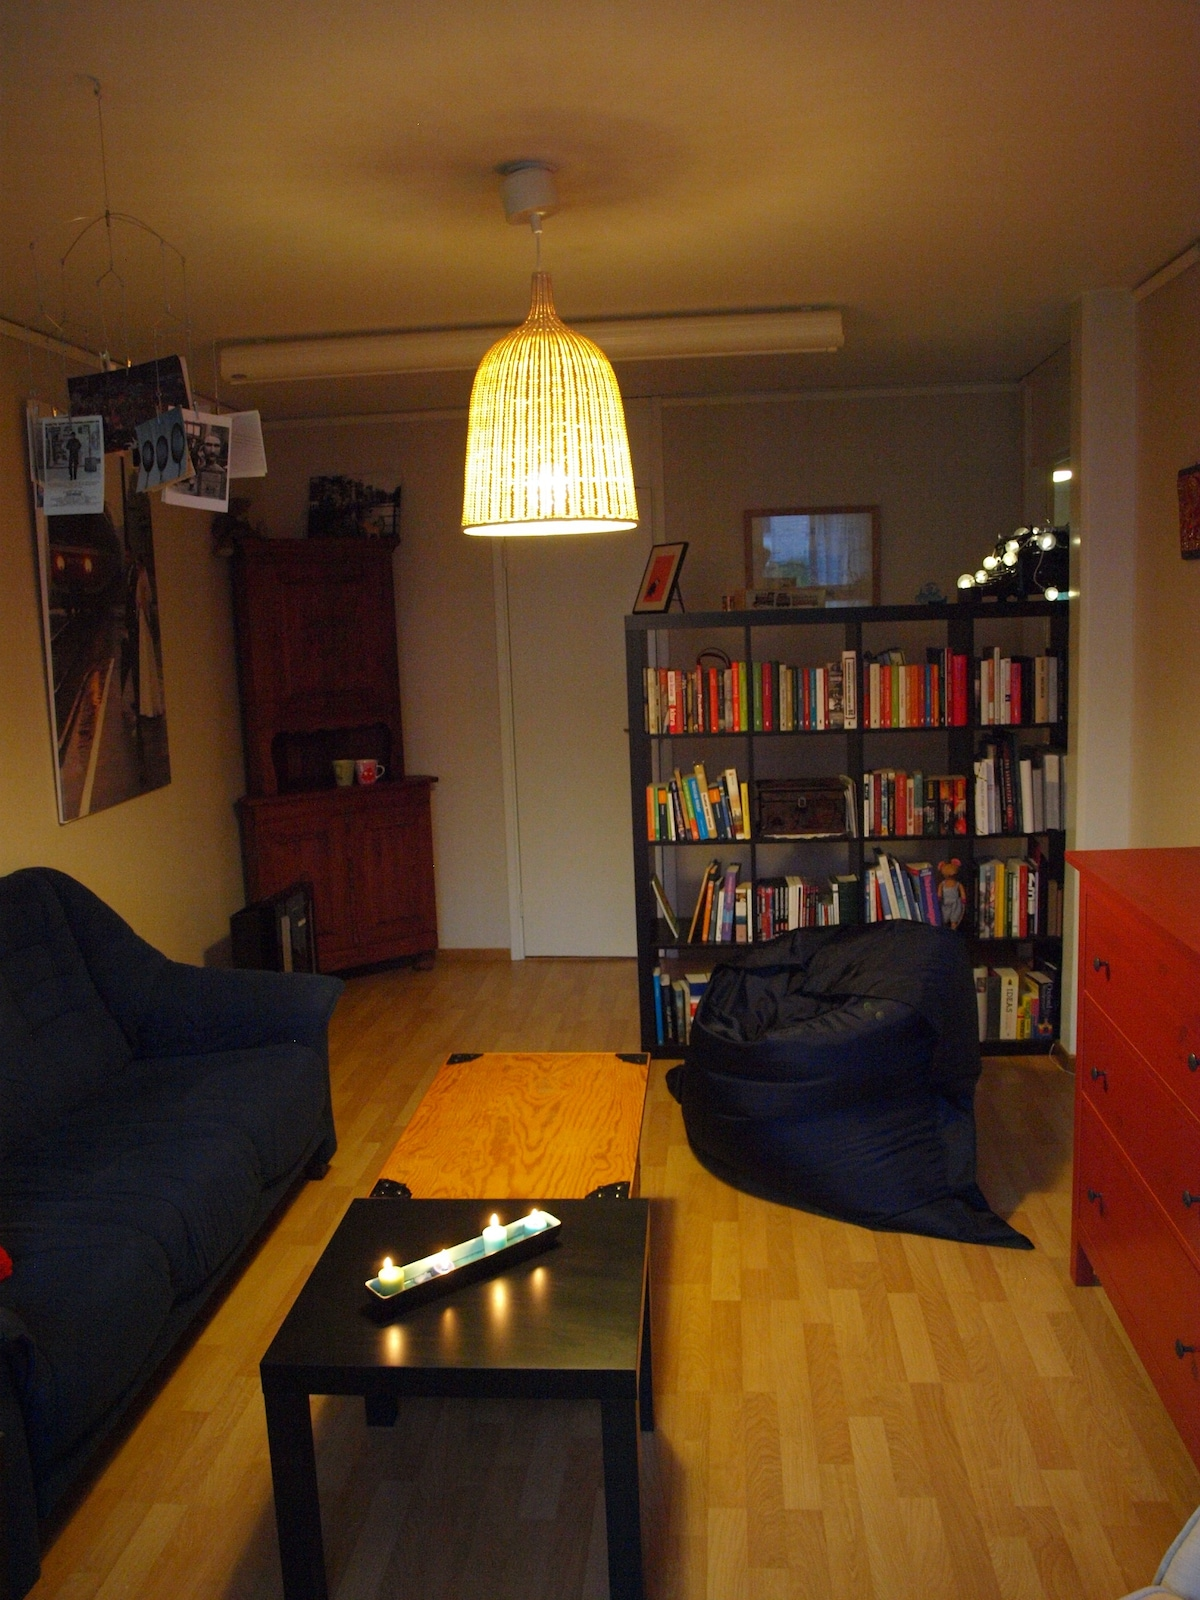 A large shared living space